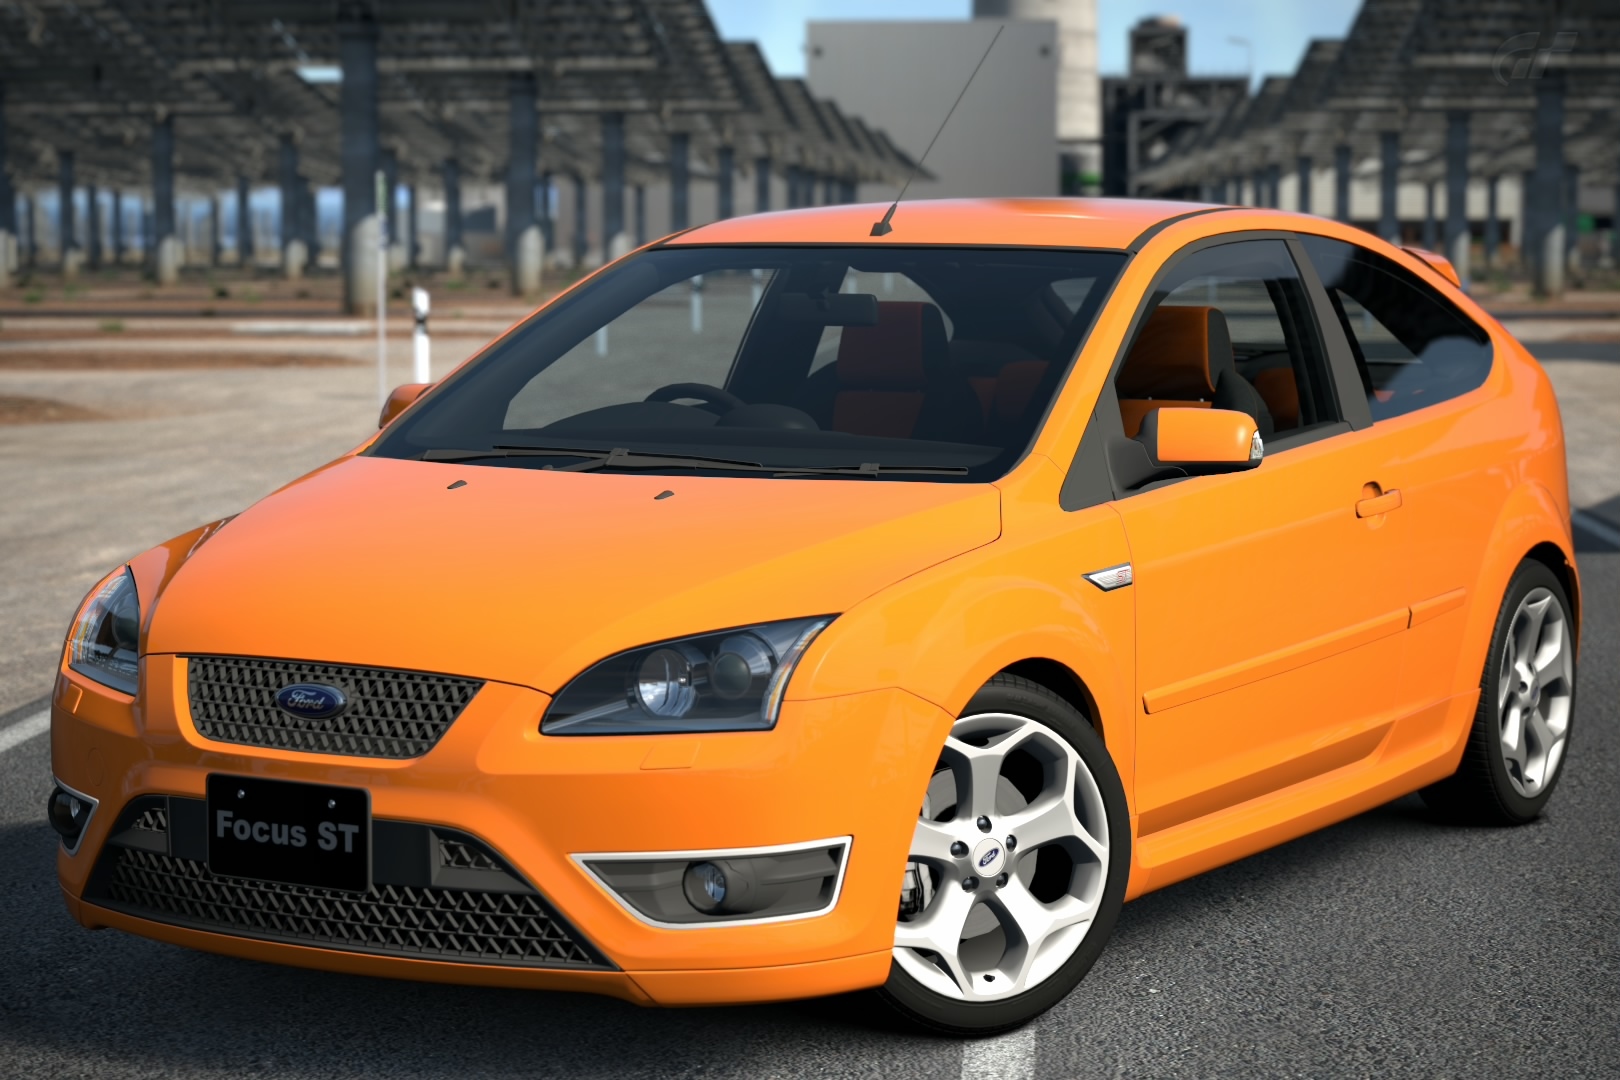 Ford Focus ST '06